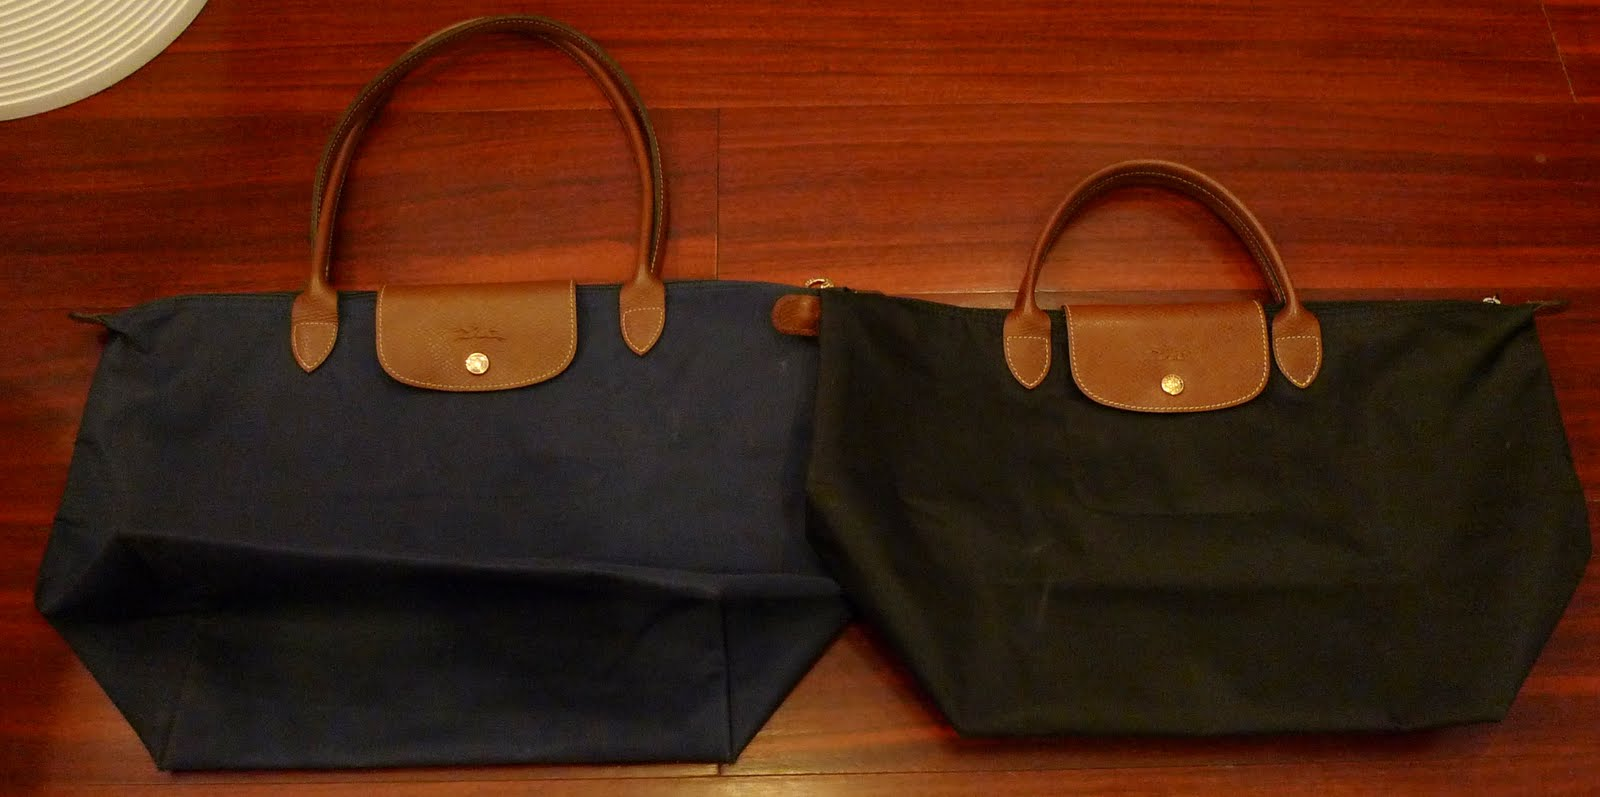 On French And Chinese Le Pliages Authenticate Your Pliage The Longchamp Neo Medium Black Authentic Beauty Junkee